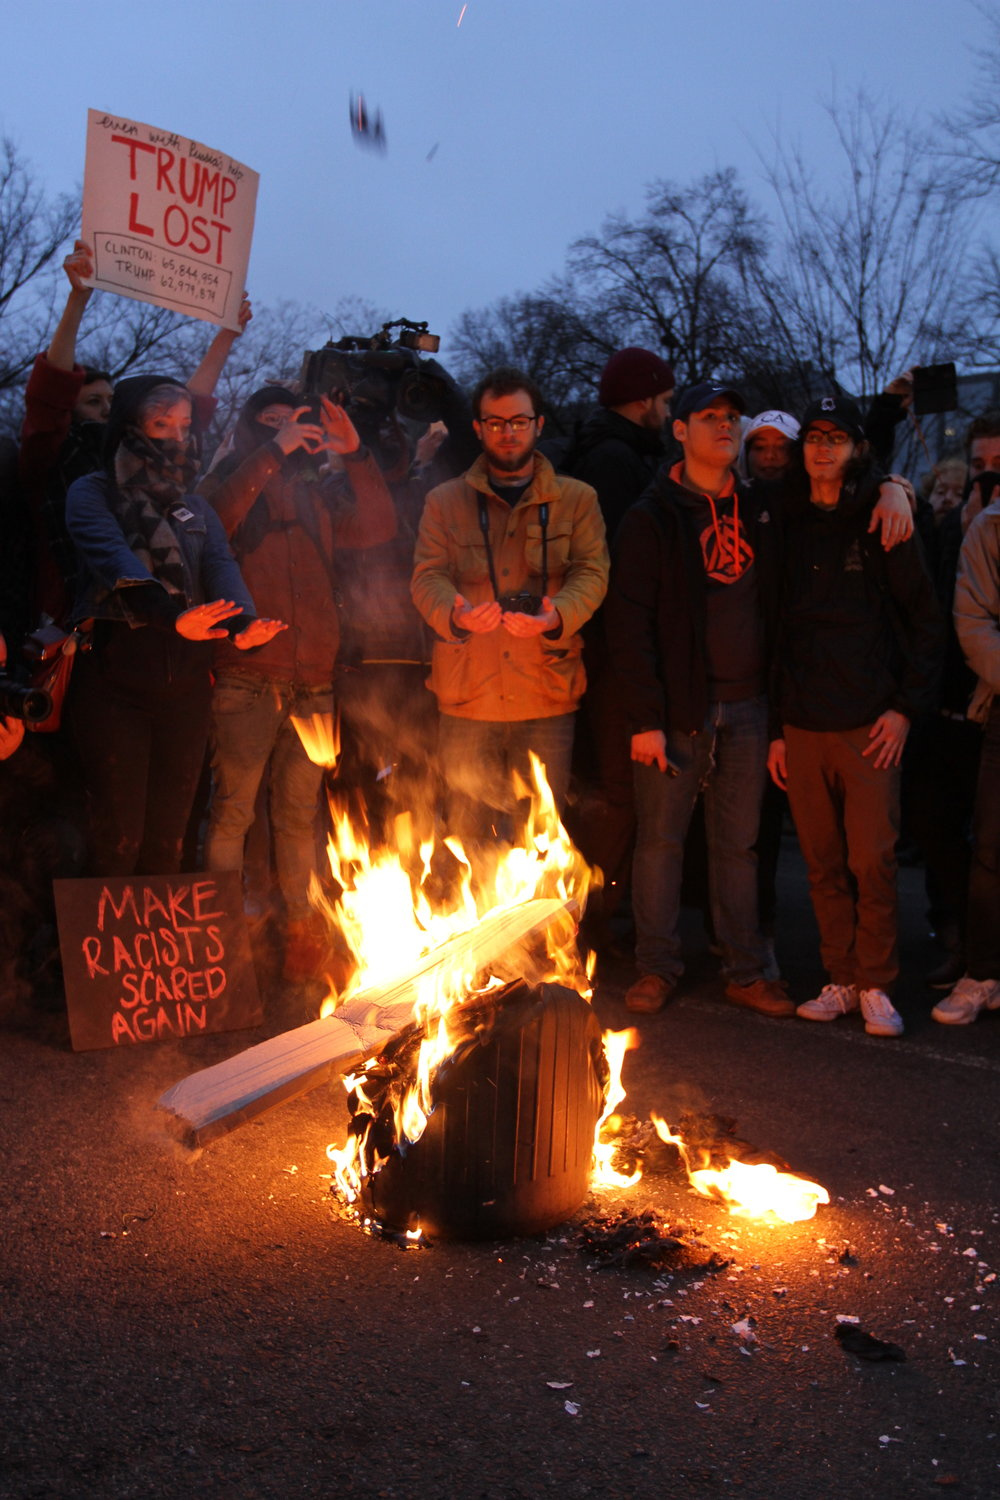 Protestors burn a garbage can on the streets of Washington, DC on the night of the inauguration.